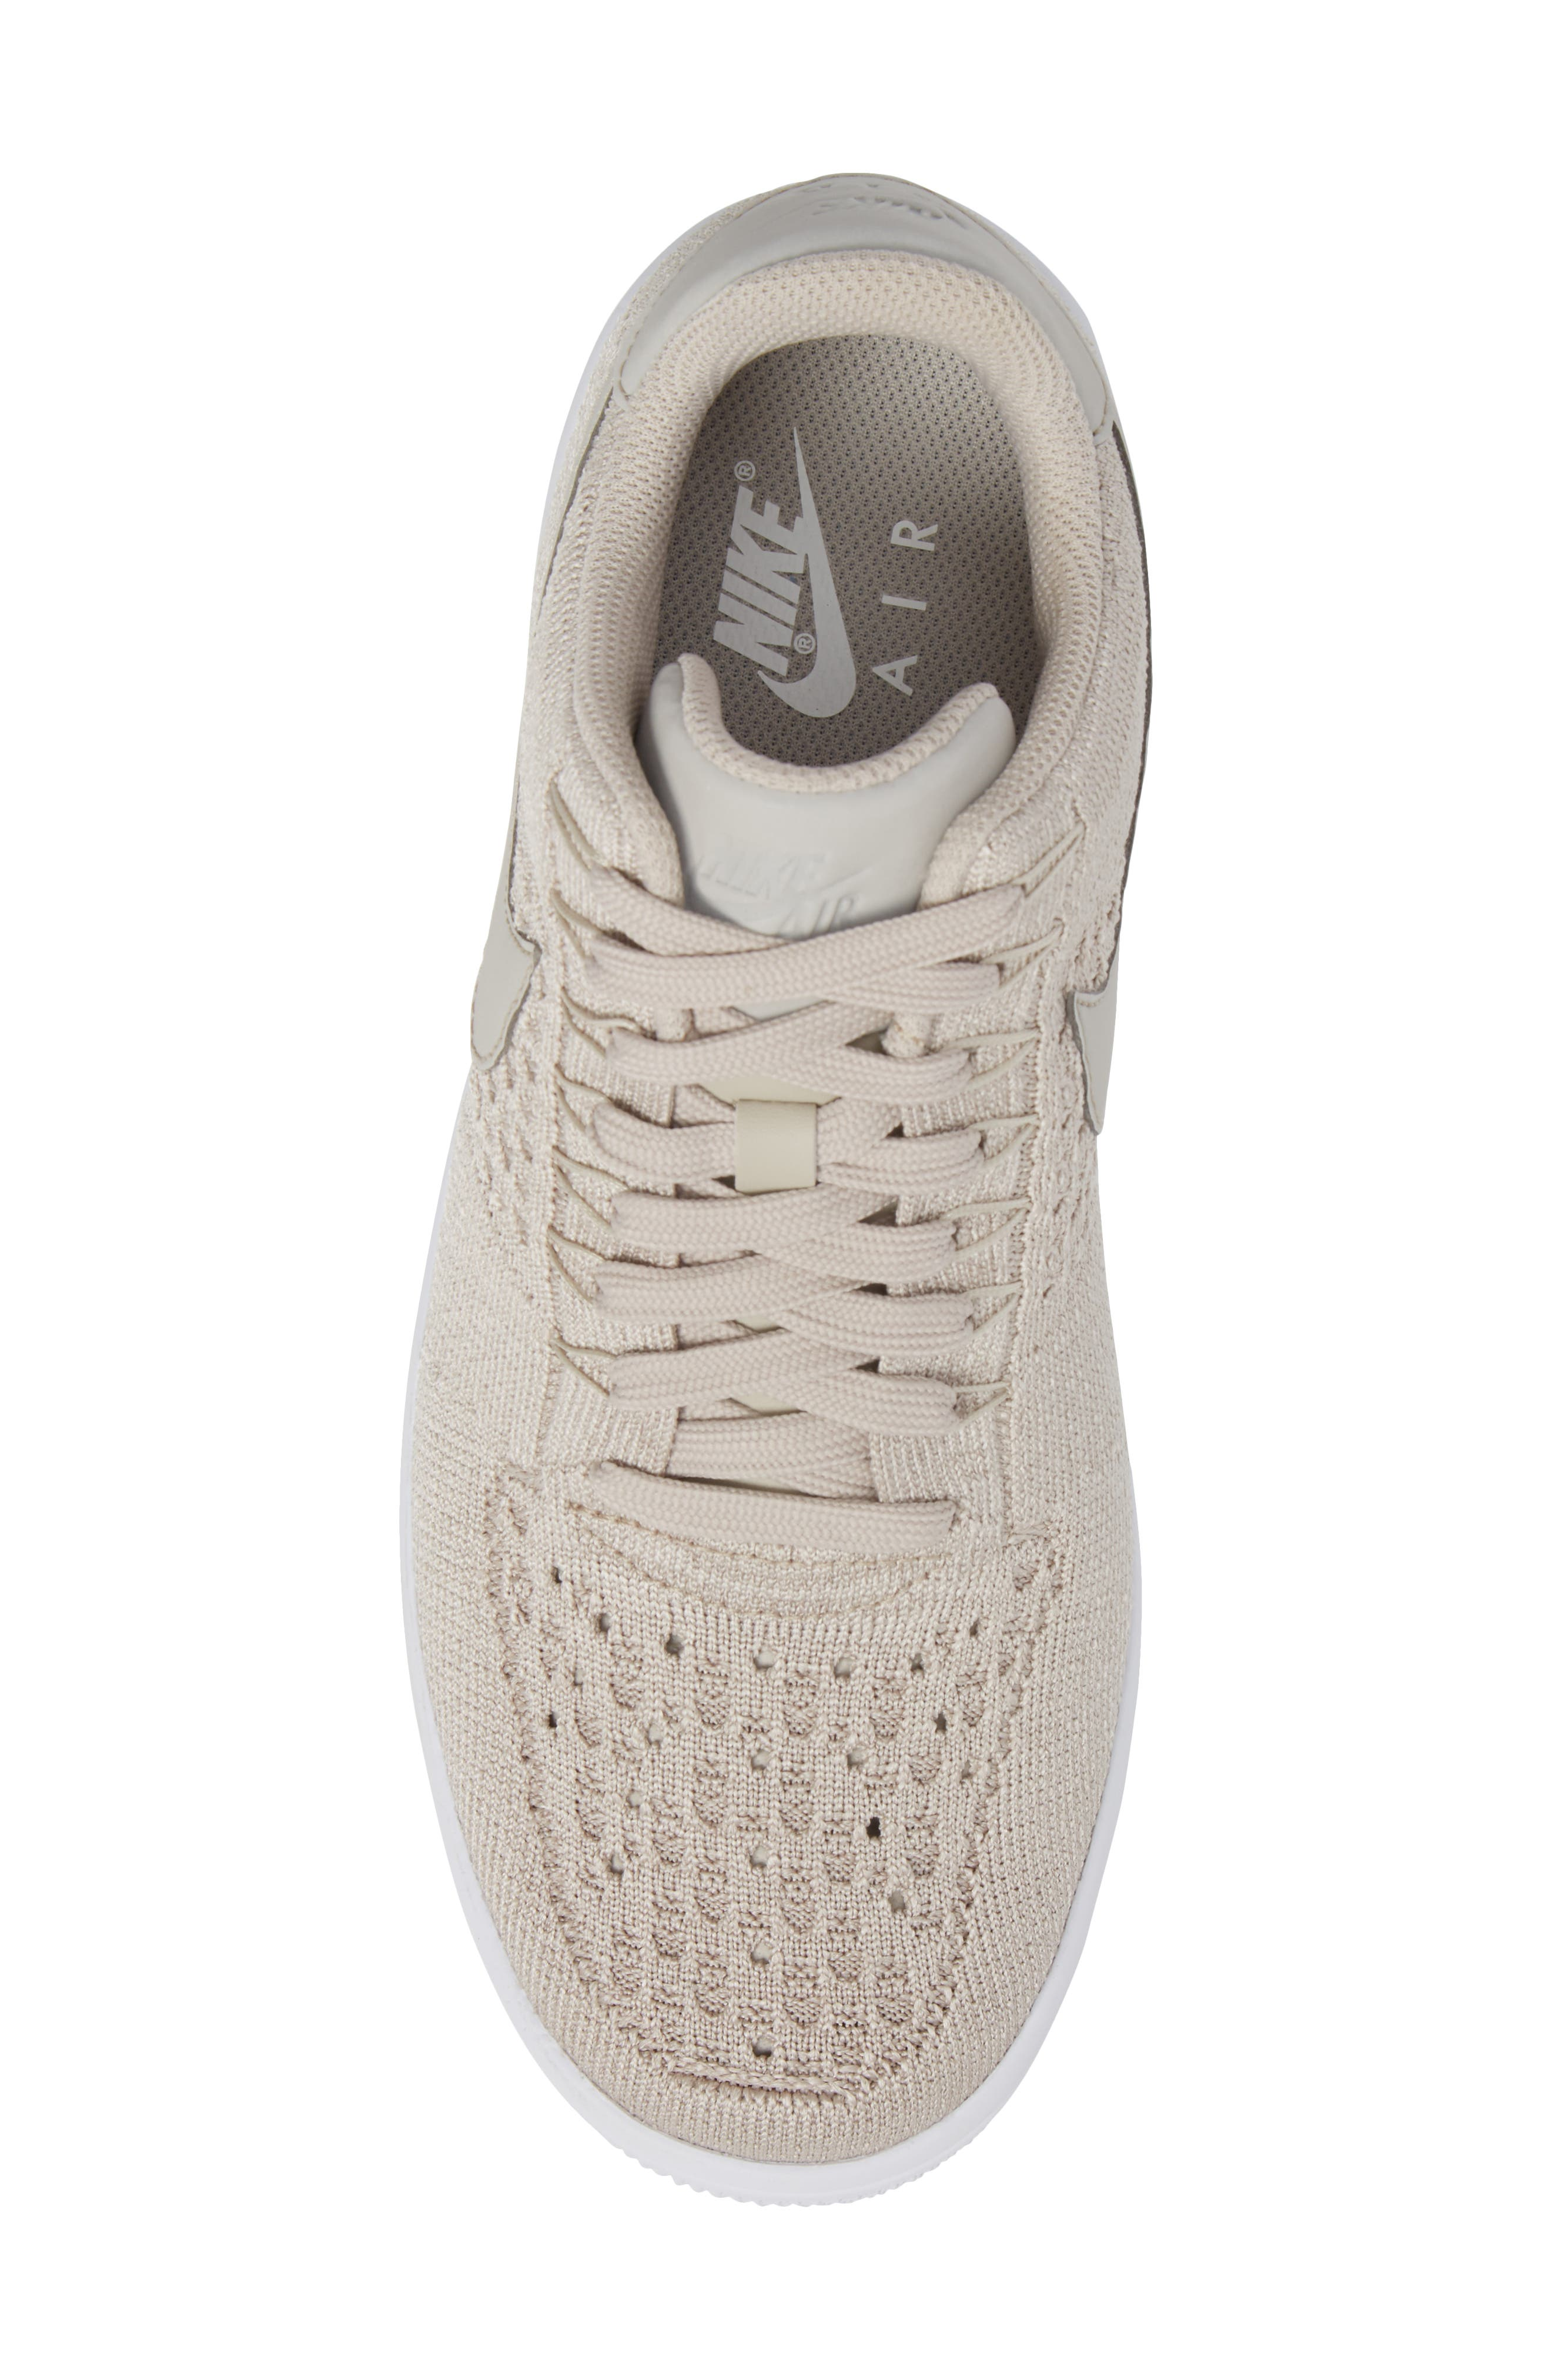 Air Force 1 Ultra Flyknit Low Sneaker,                             Alternate thumbnail 5, color,                             String/ String/ White